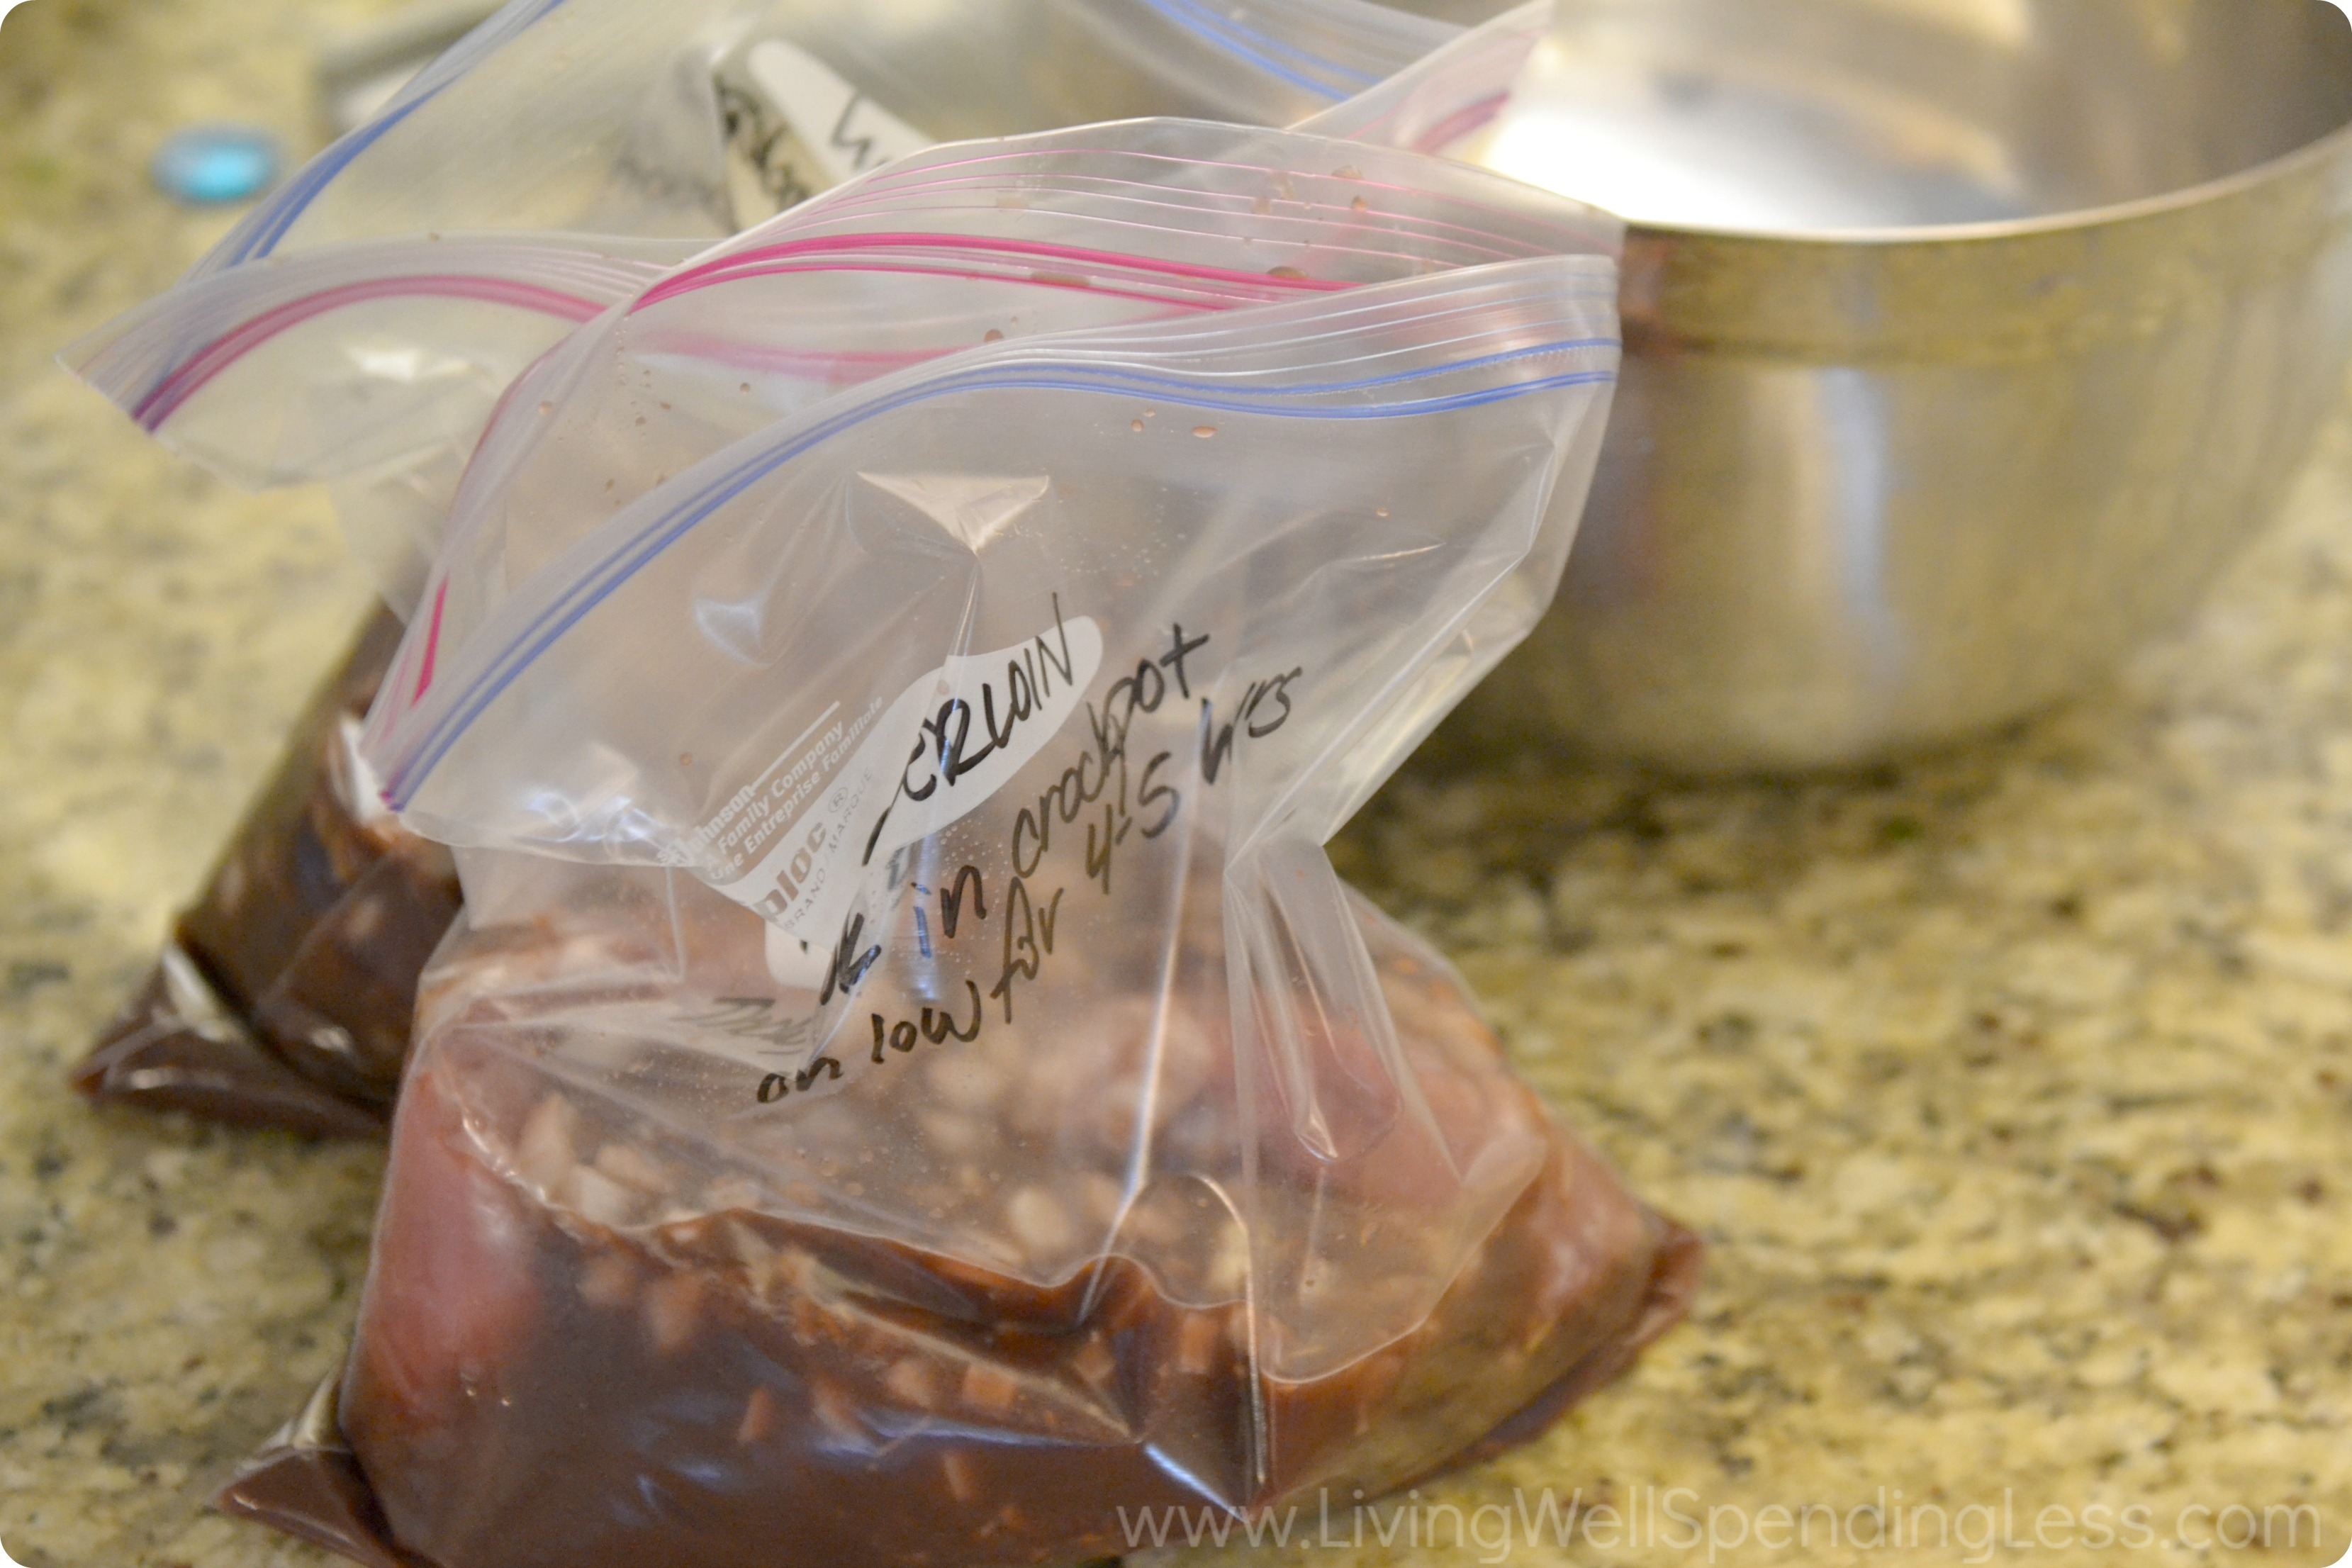 Add the liquid to freezer bags, along with the tenderloin and label with instructions.